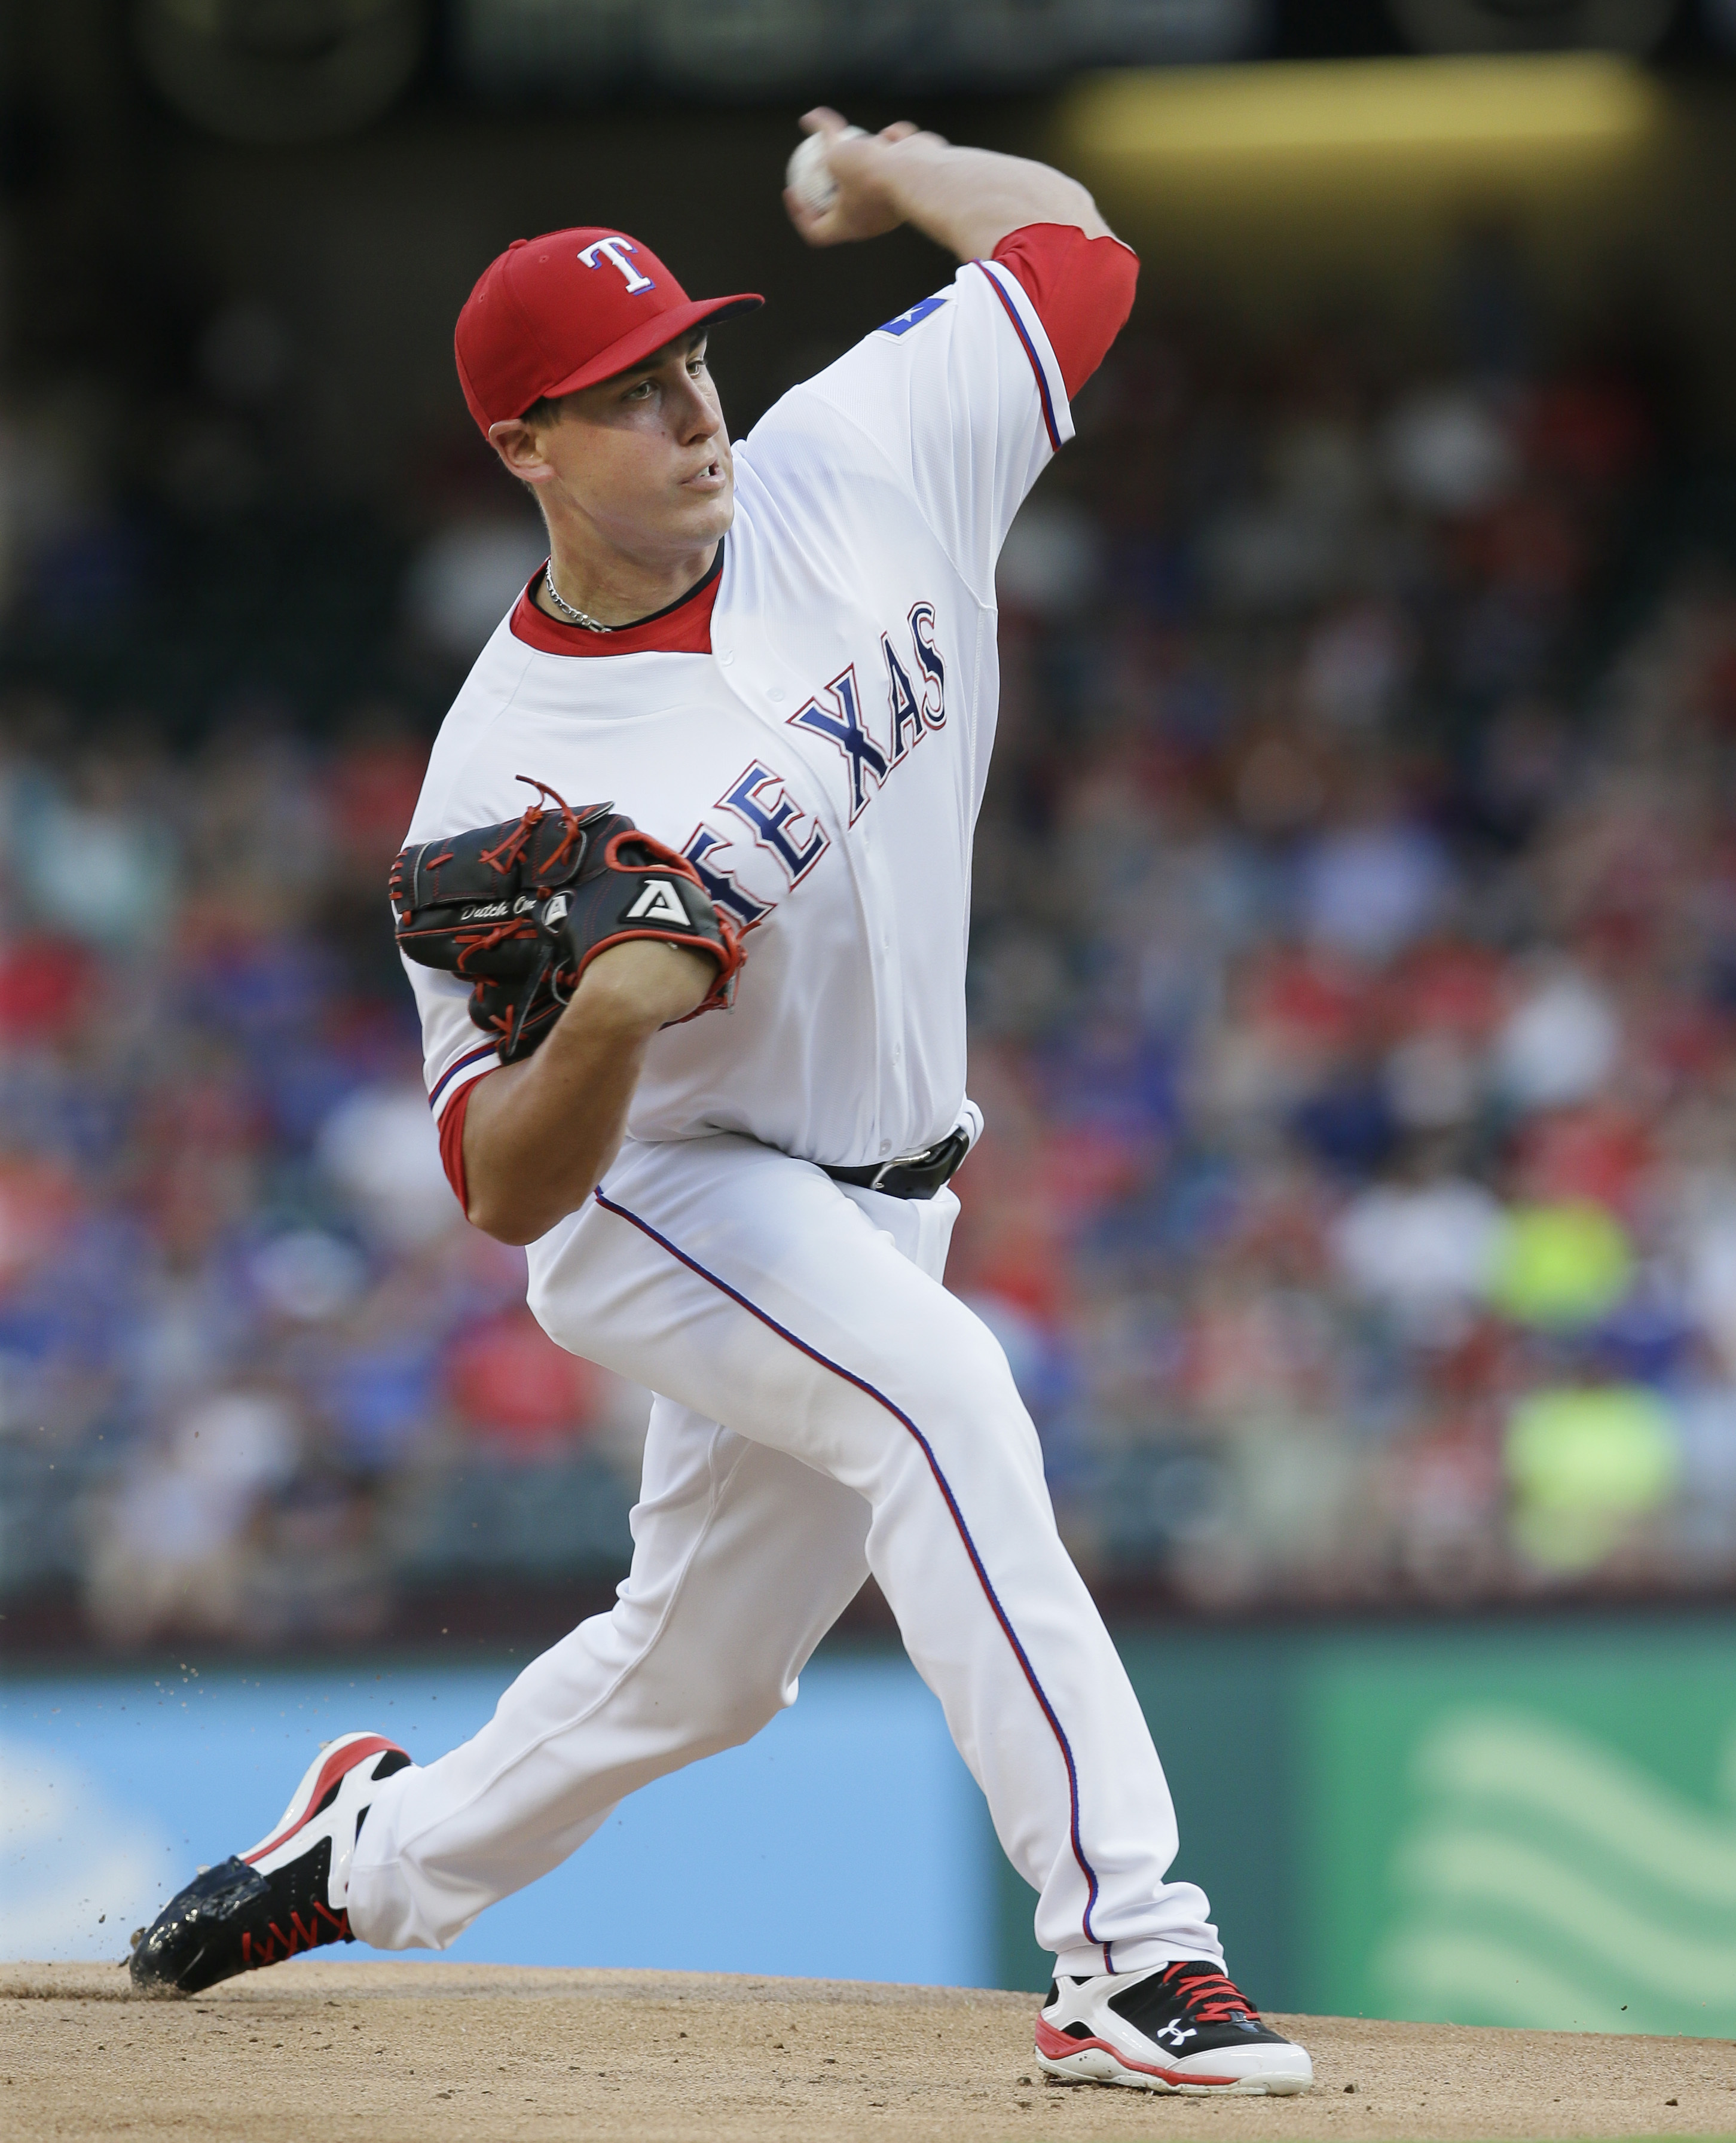 Texas Rangers starting pitcher Derek Holland throws during the first inning of a baseball game against the Baltimore Orioles in Arlington, Texas, Monday, June 20, 2016. (AP Photo/LM Otero)